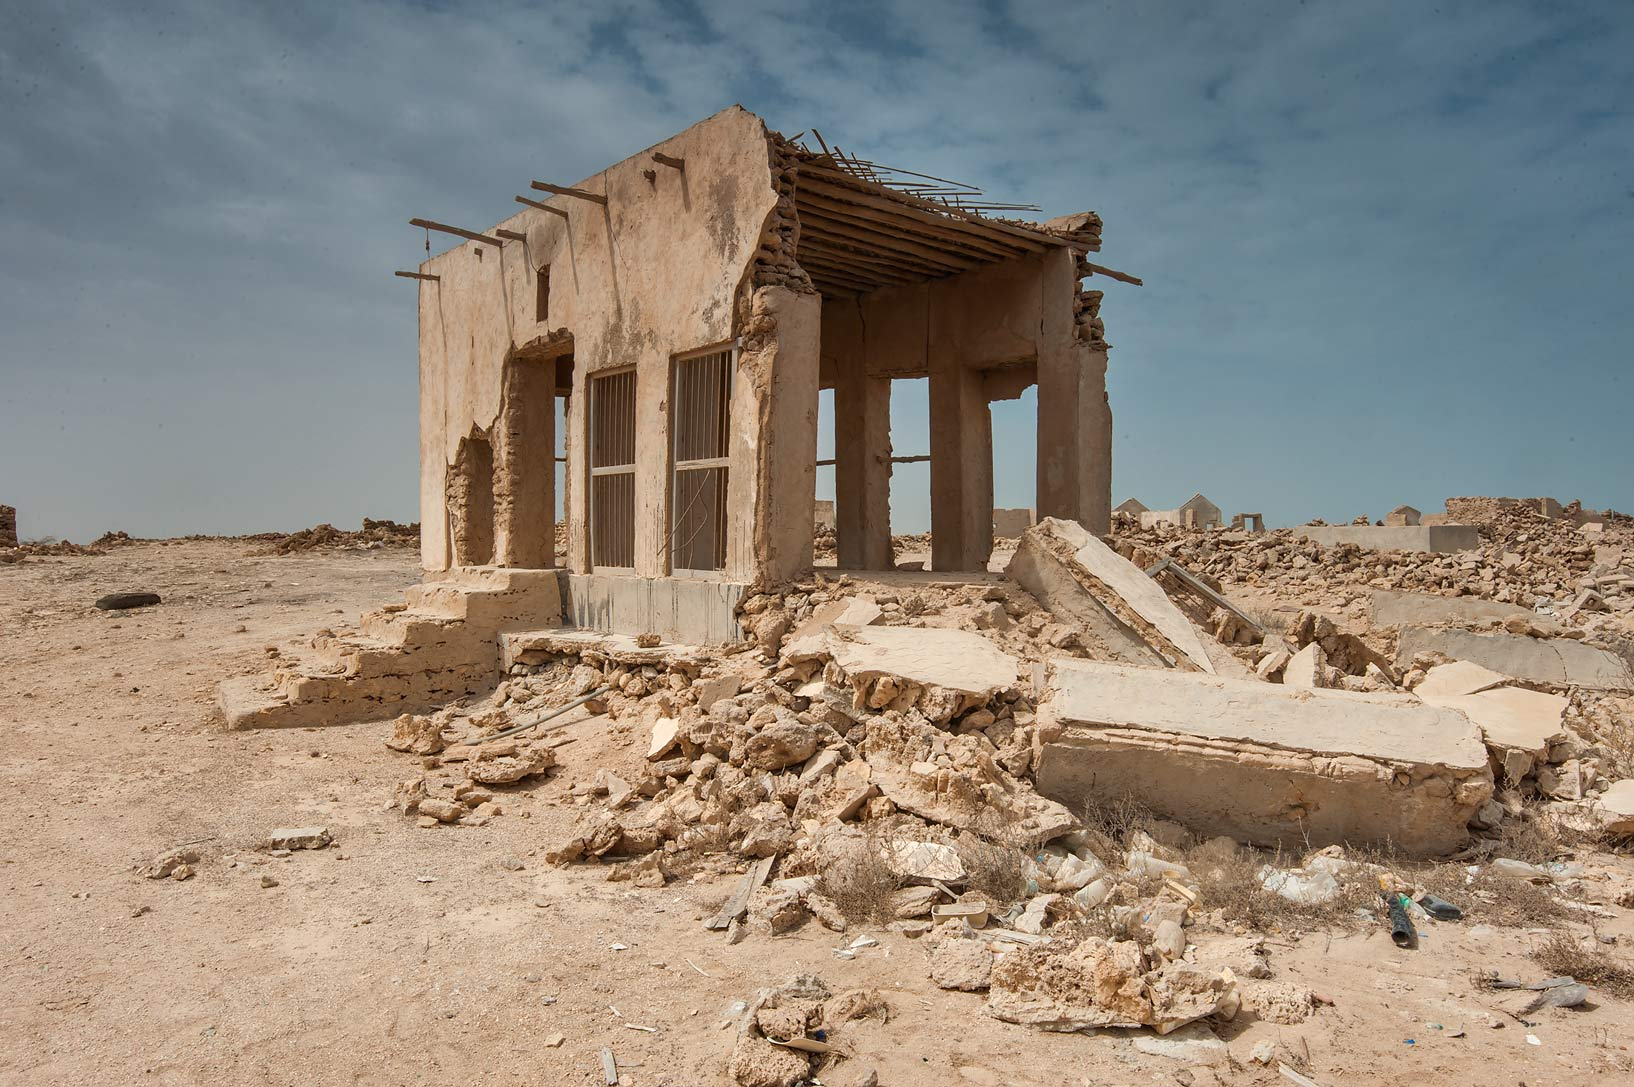 Stone house in a village of Al Areesh (Arish). Northern Qatar